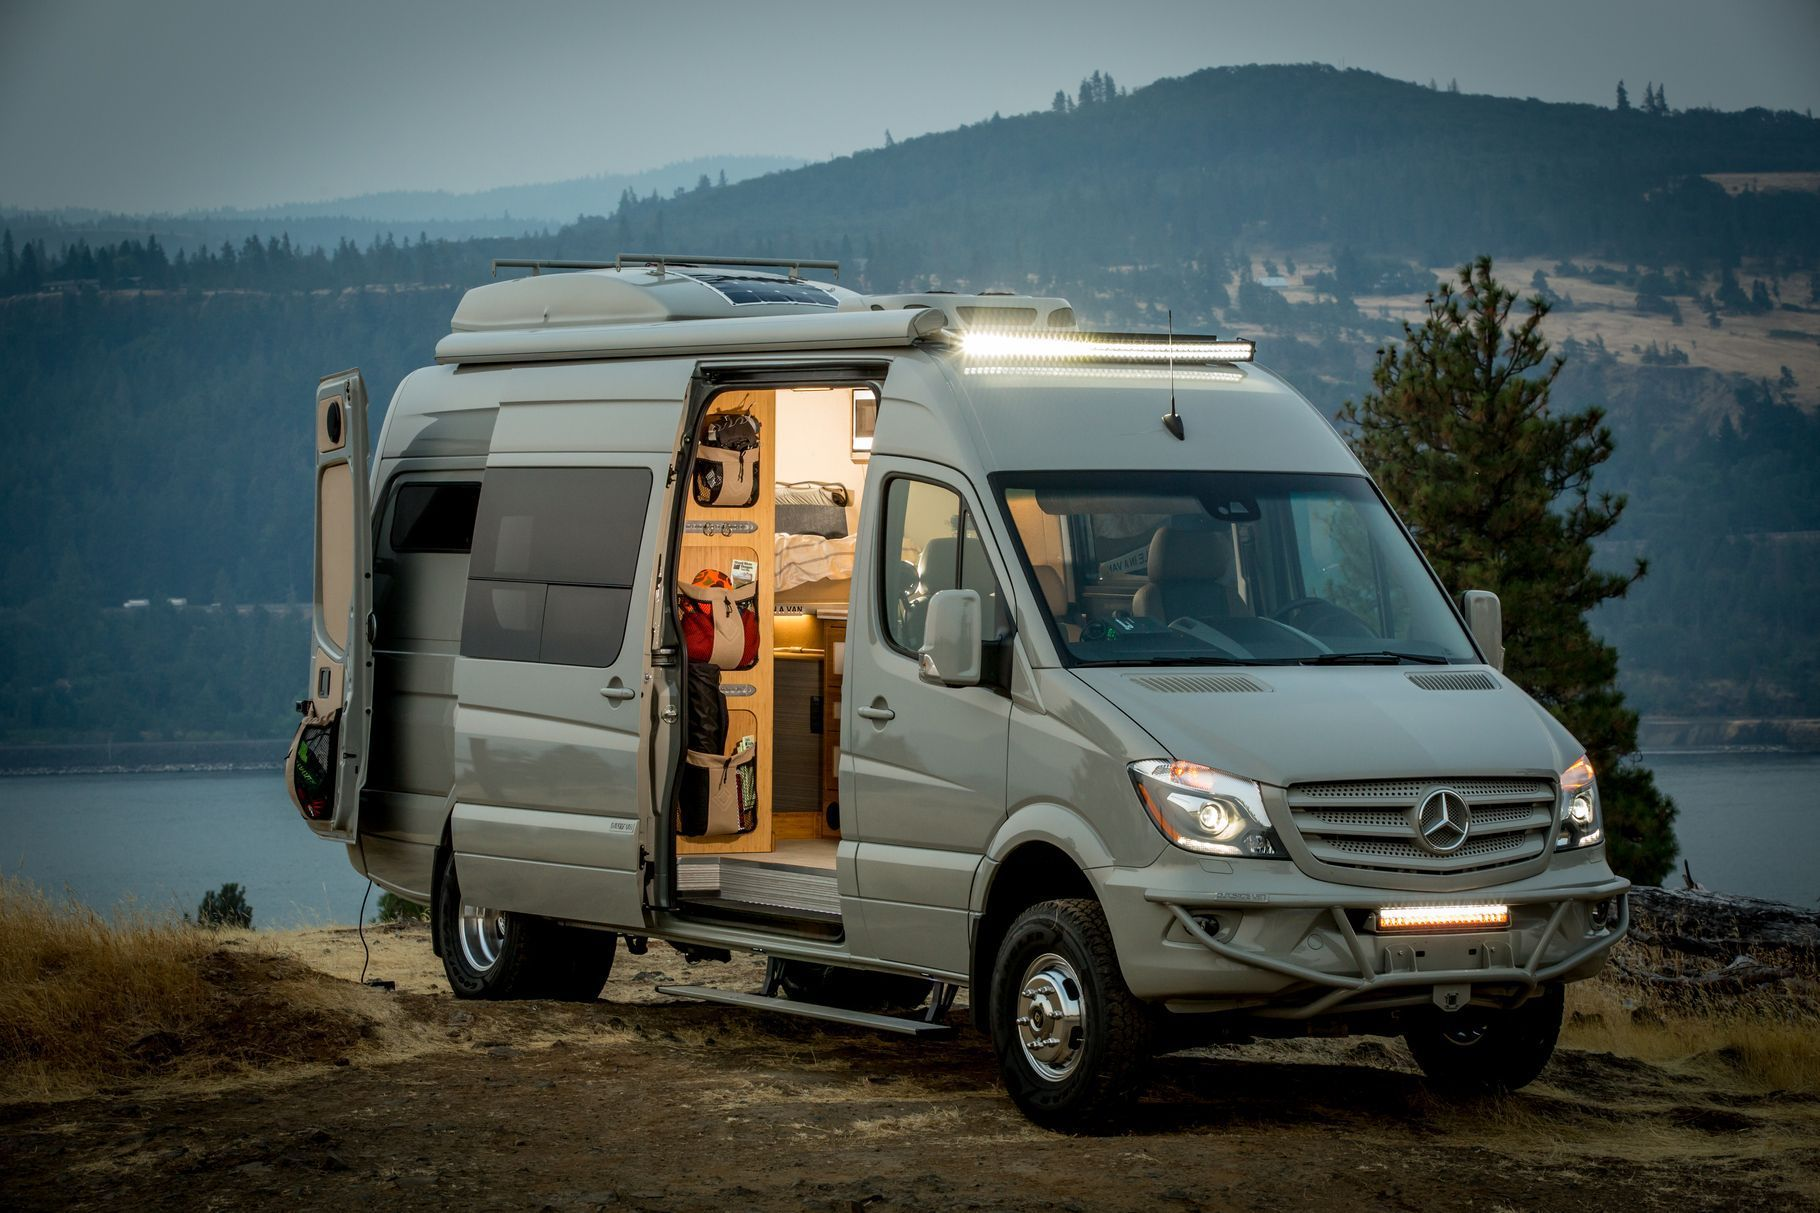 rv air conditioner wont turn on RV Camping Luxury